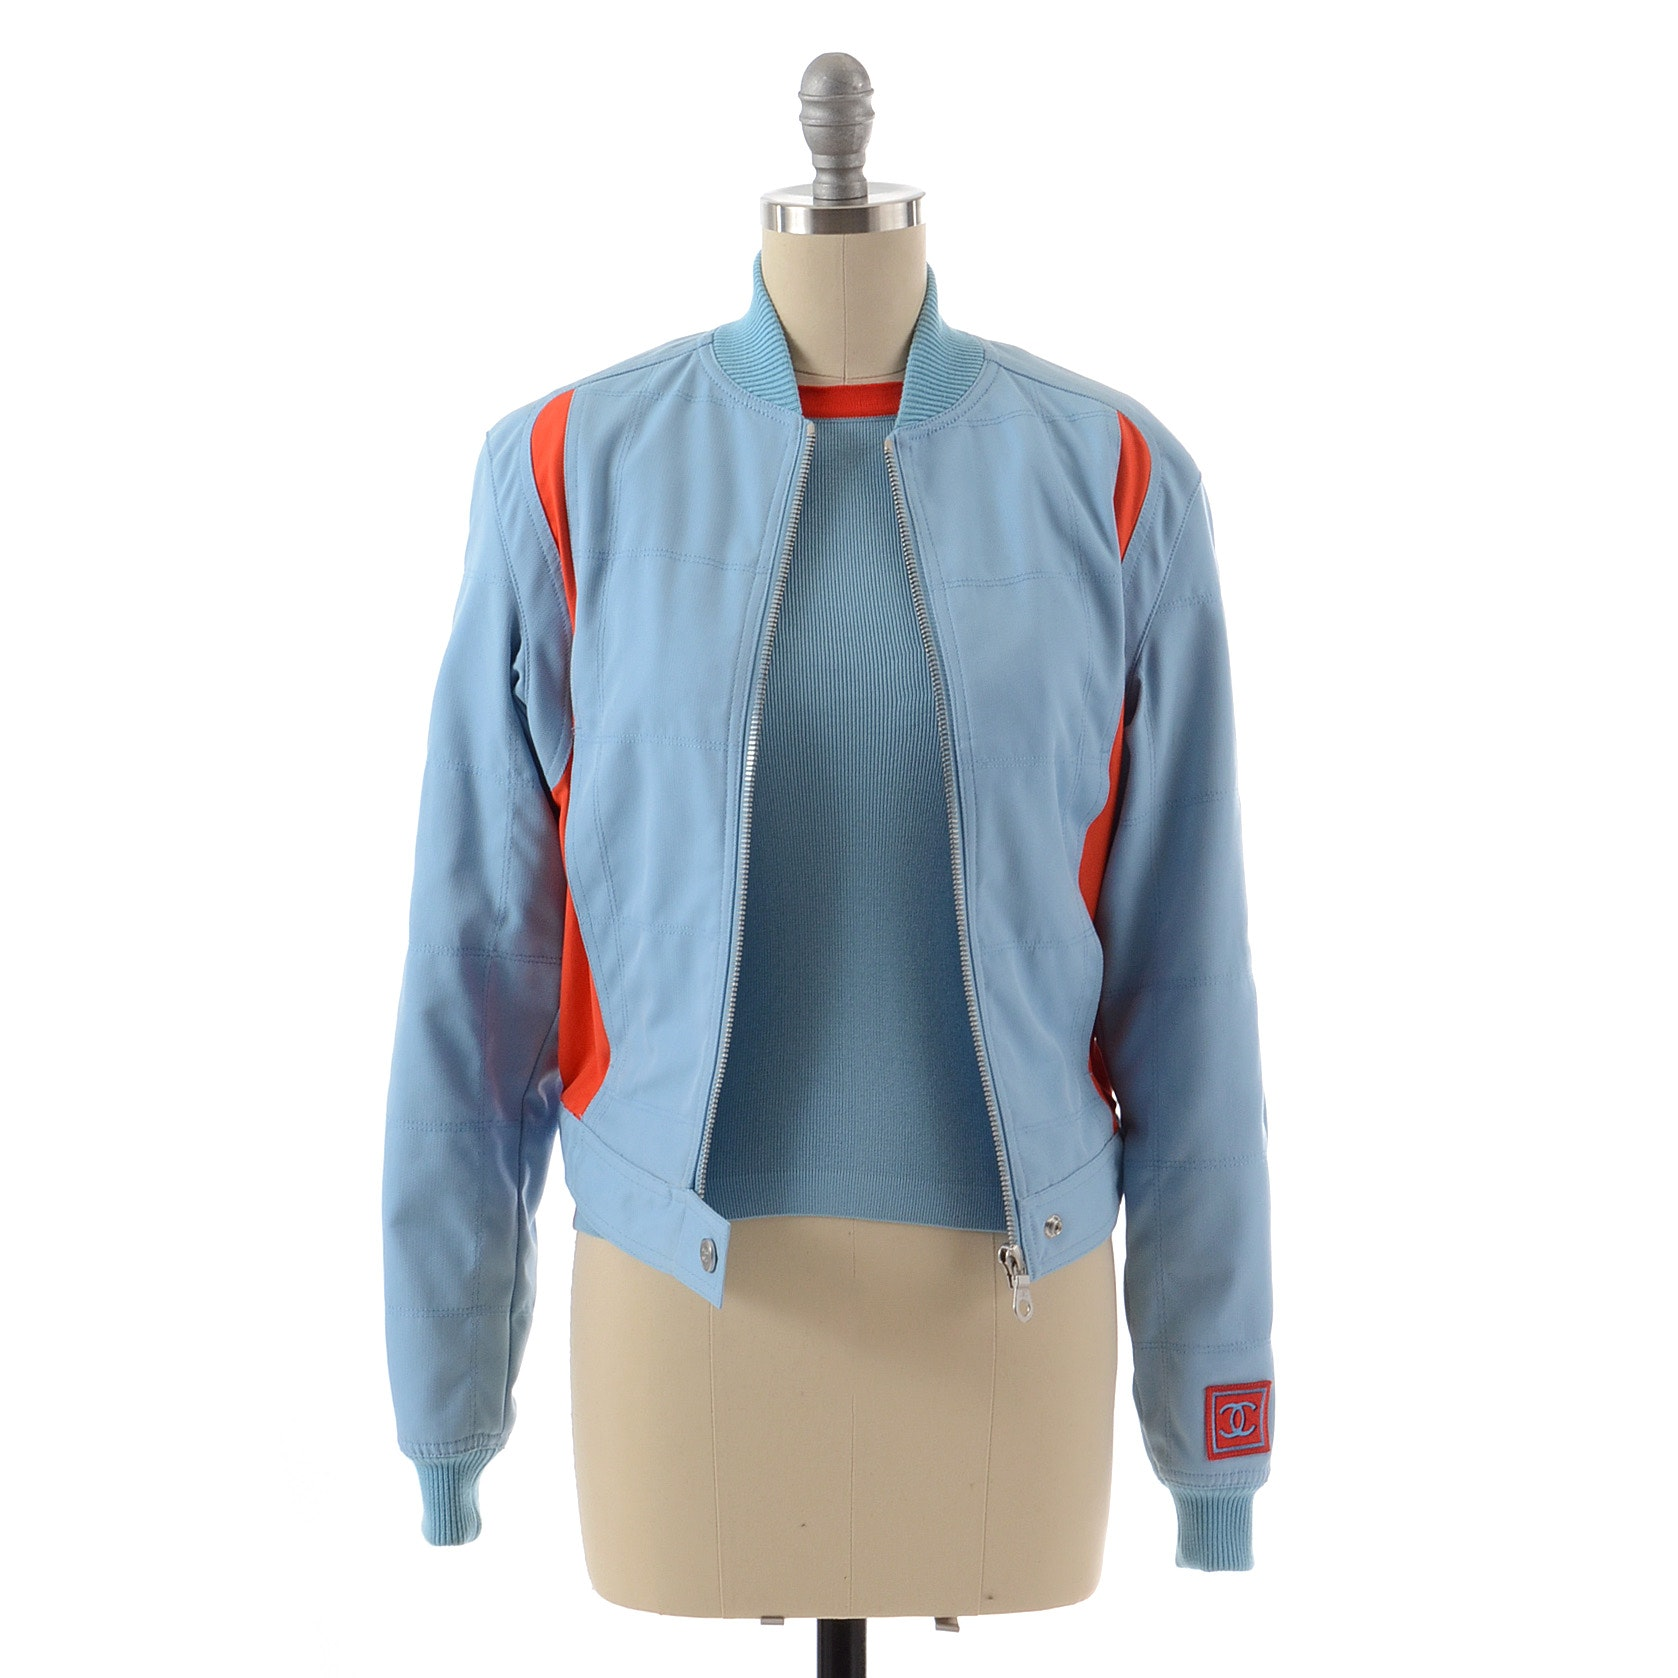 Chanel Cotton Zipper Front Jacket in Blue Cotton with Orange Accents and Matching Sleeveless Top